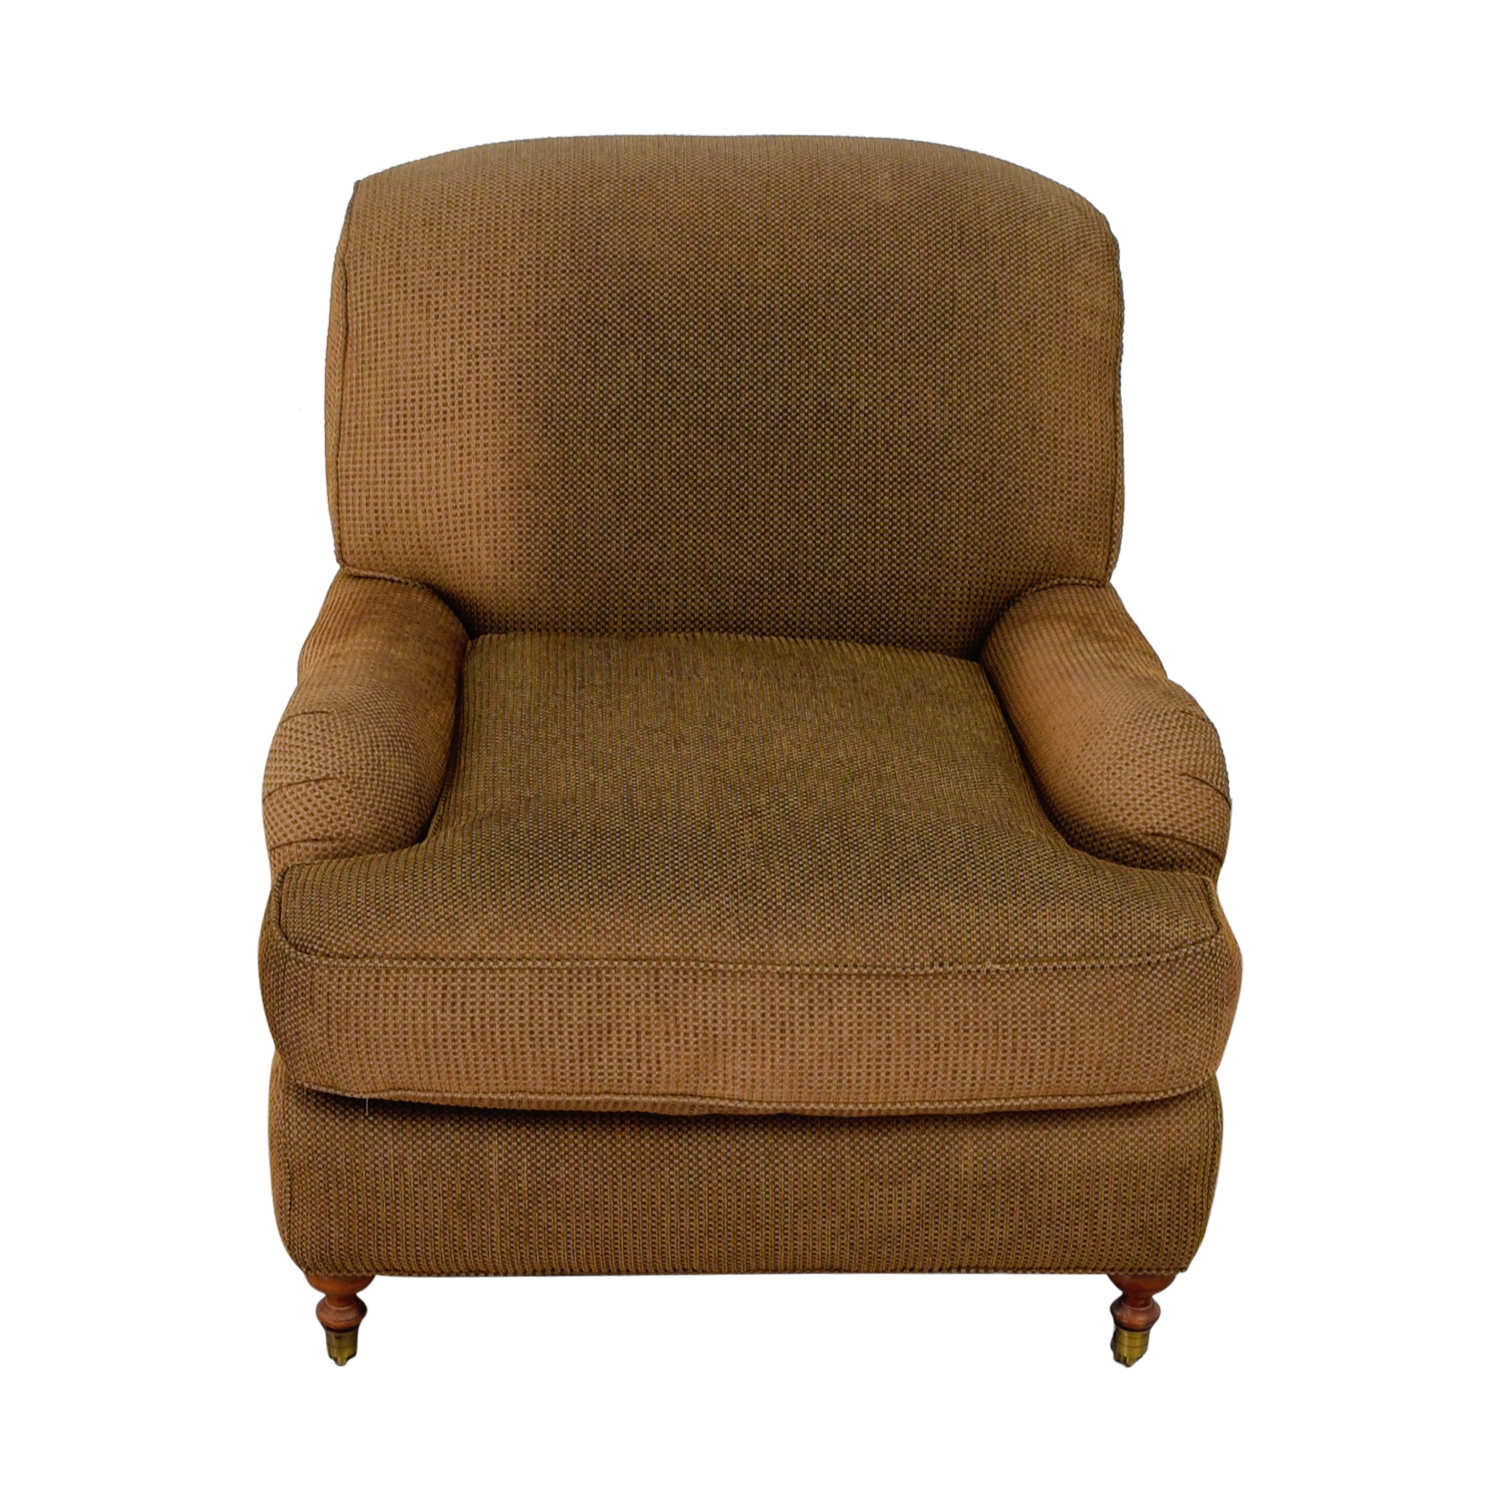 Brown Comfort Accent Chair / Sofas